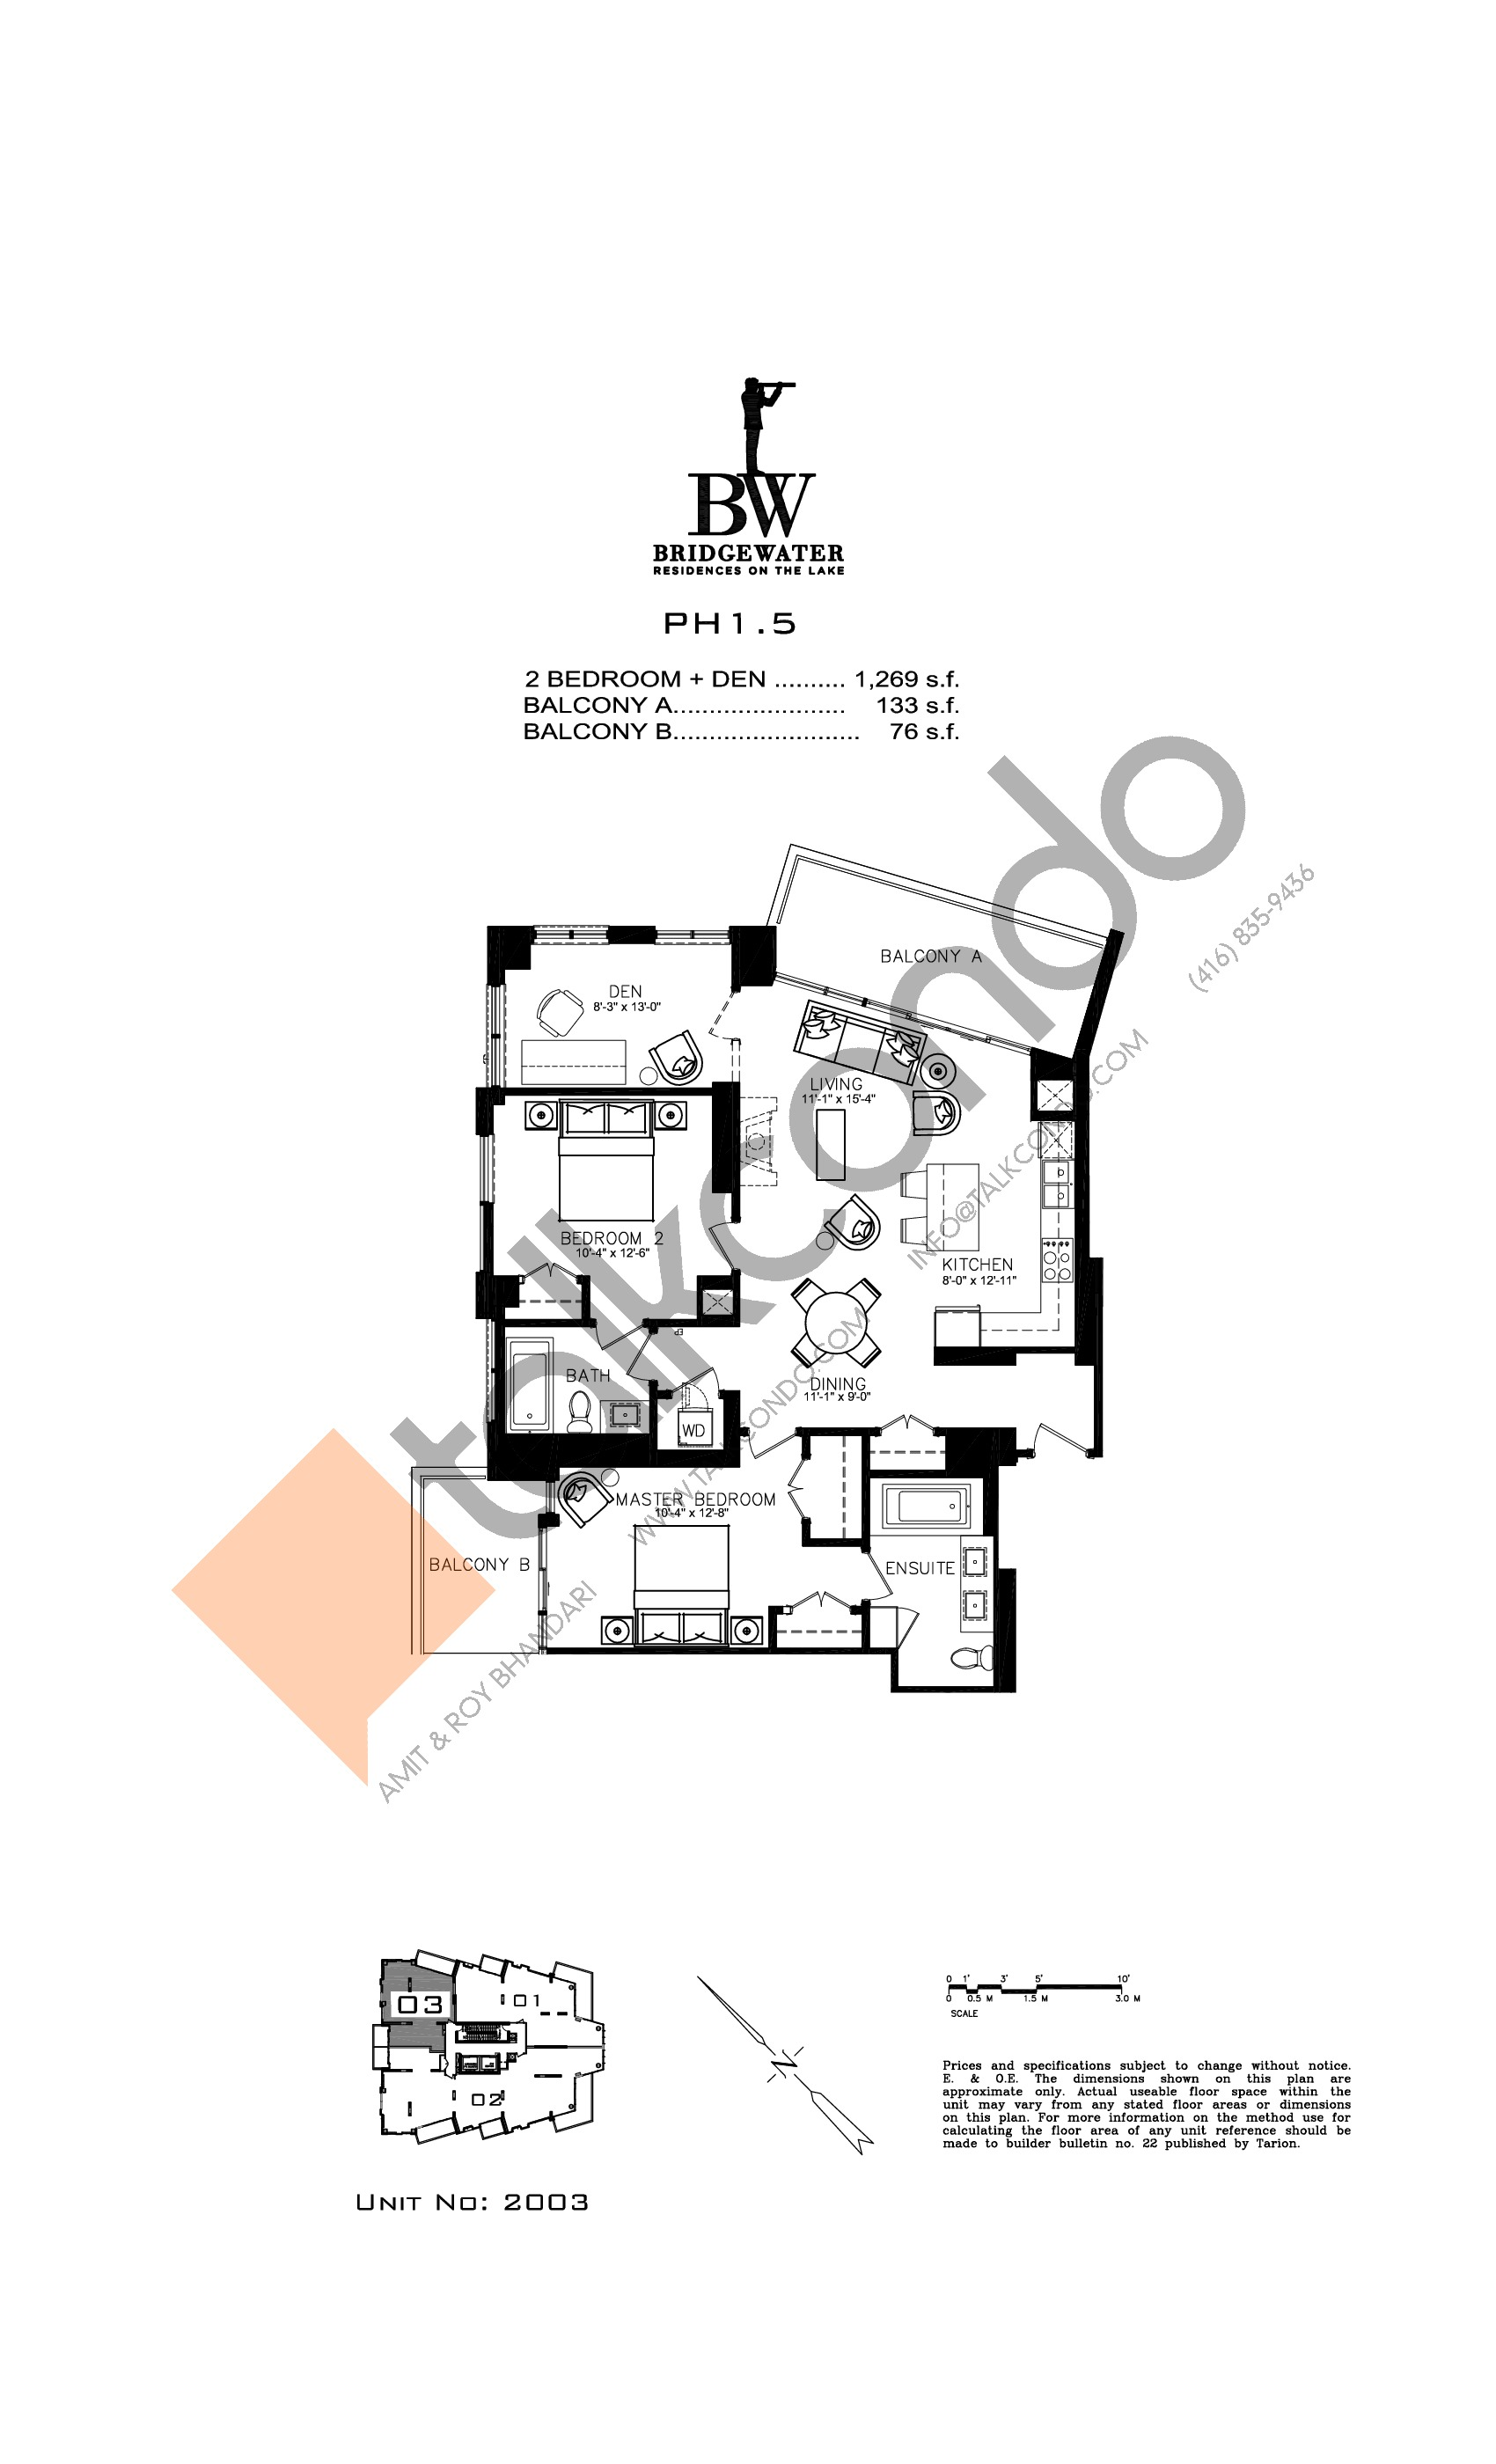 Unit 2003 Floor Plan at Bridgewater Residences on the Lake Condos - 1269 sq.ft